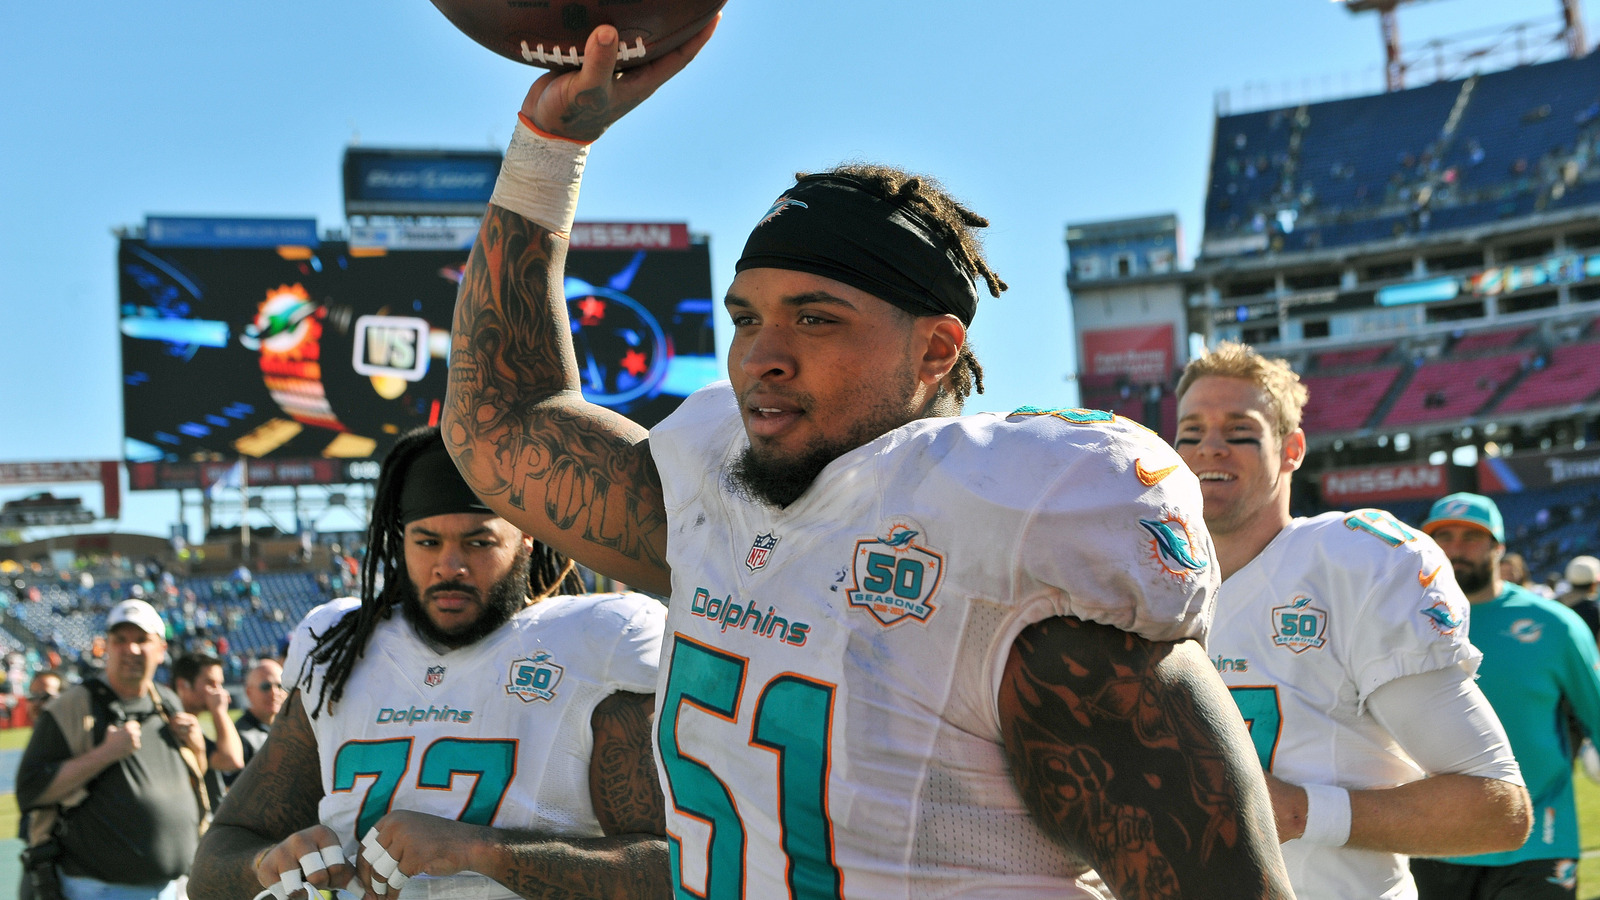 Mike Pouncey spoke with Hernandez day before suicide